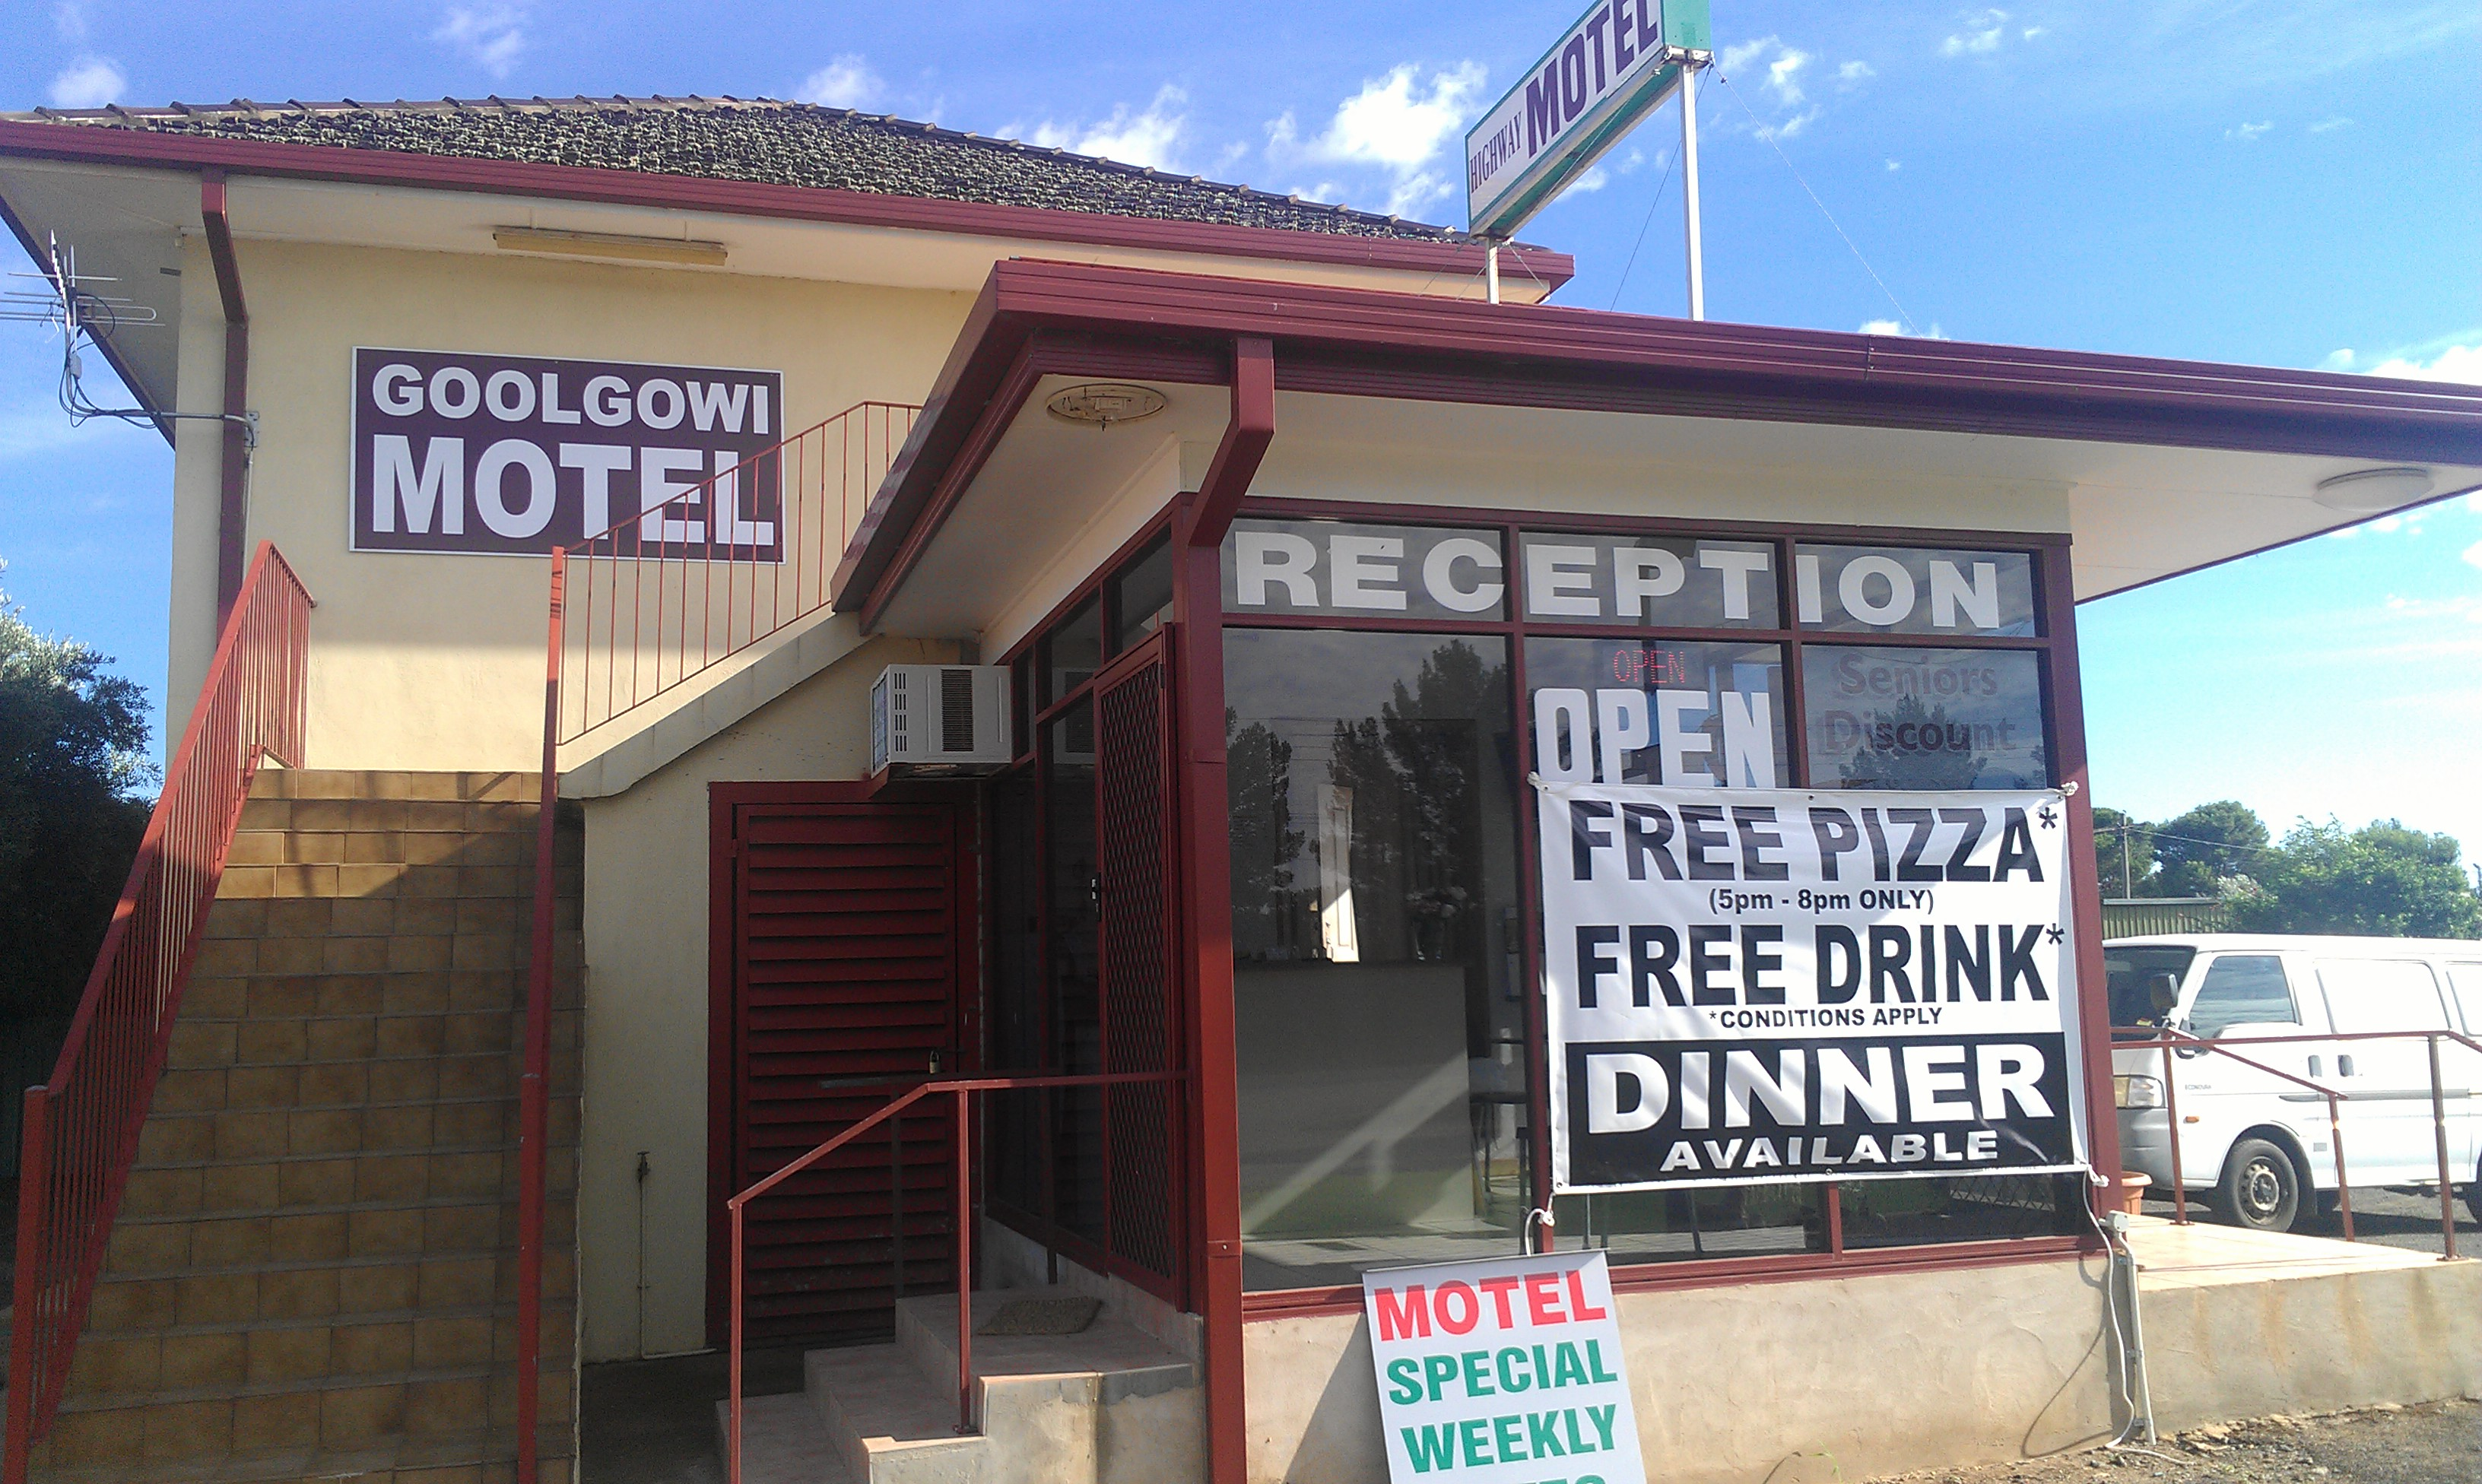 Royal Mail Hotel Goolgowi